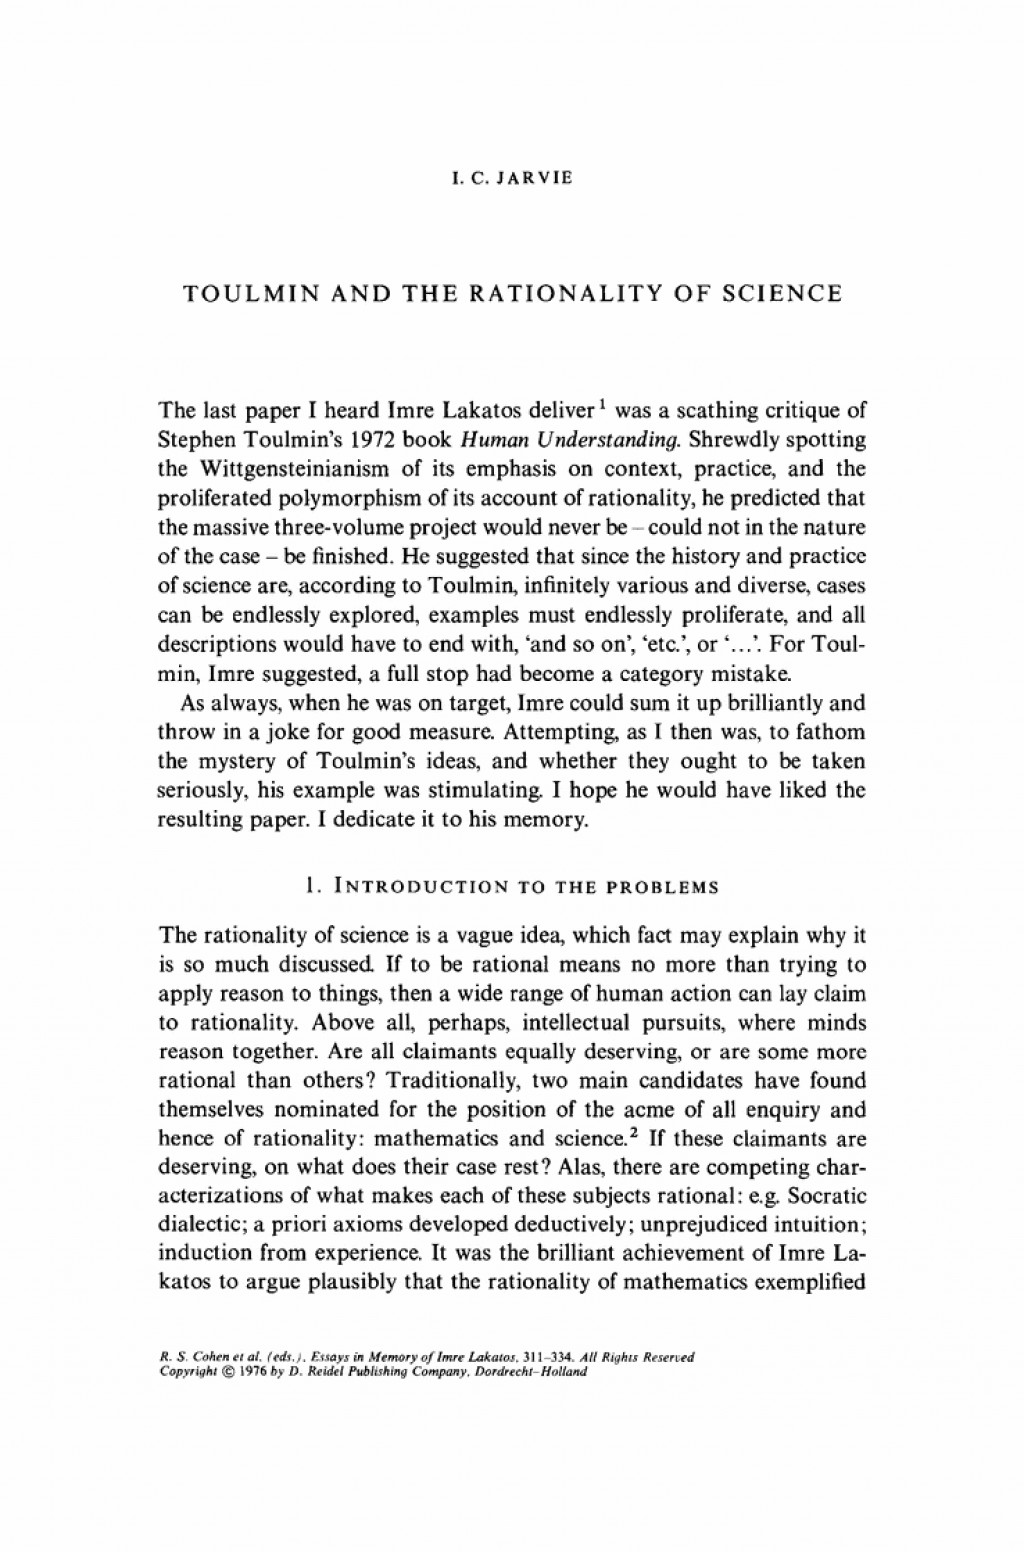 006 Minimum Wage Essay Toulmin And The Rationality Of Science Springer Outline L Impressive Persuasive Topics Contest Large